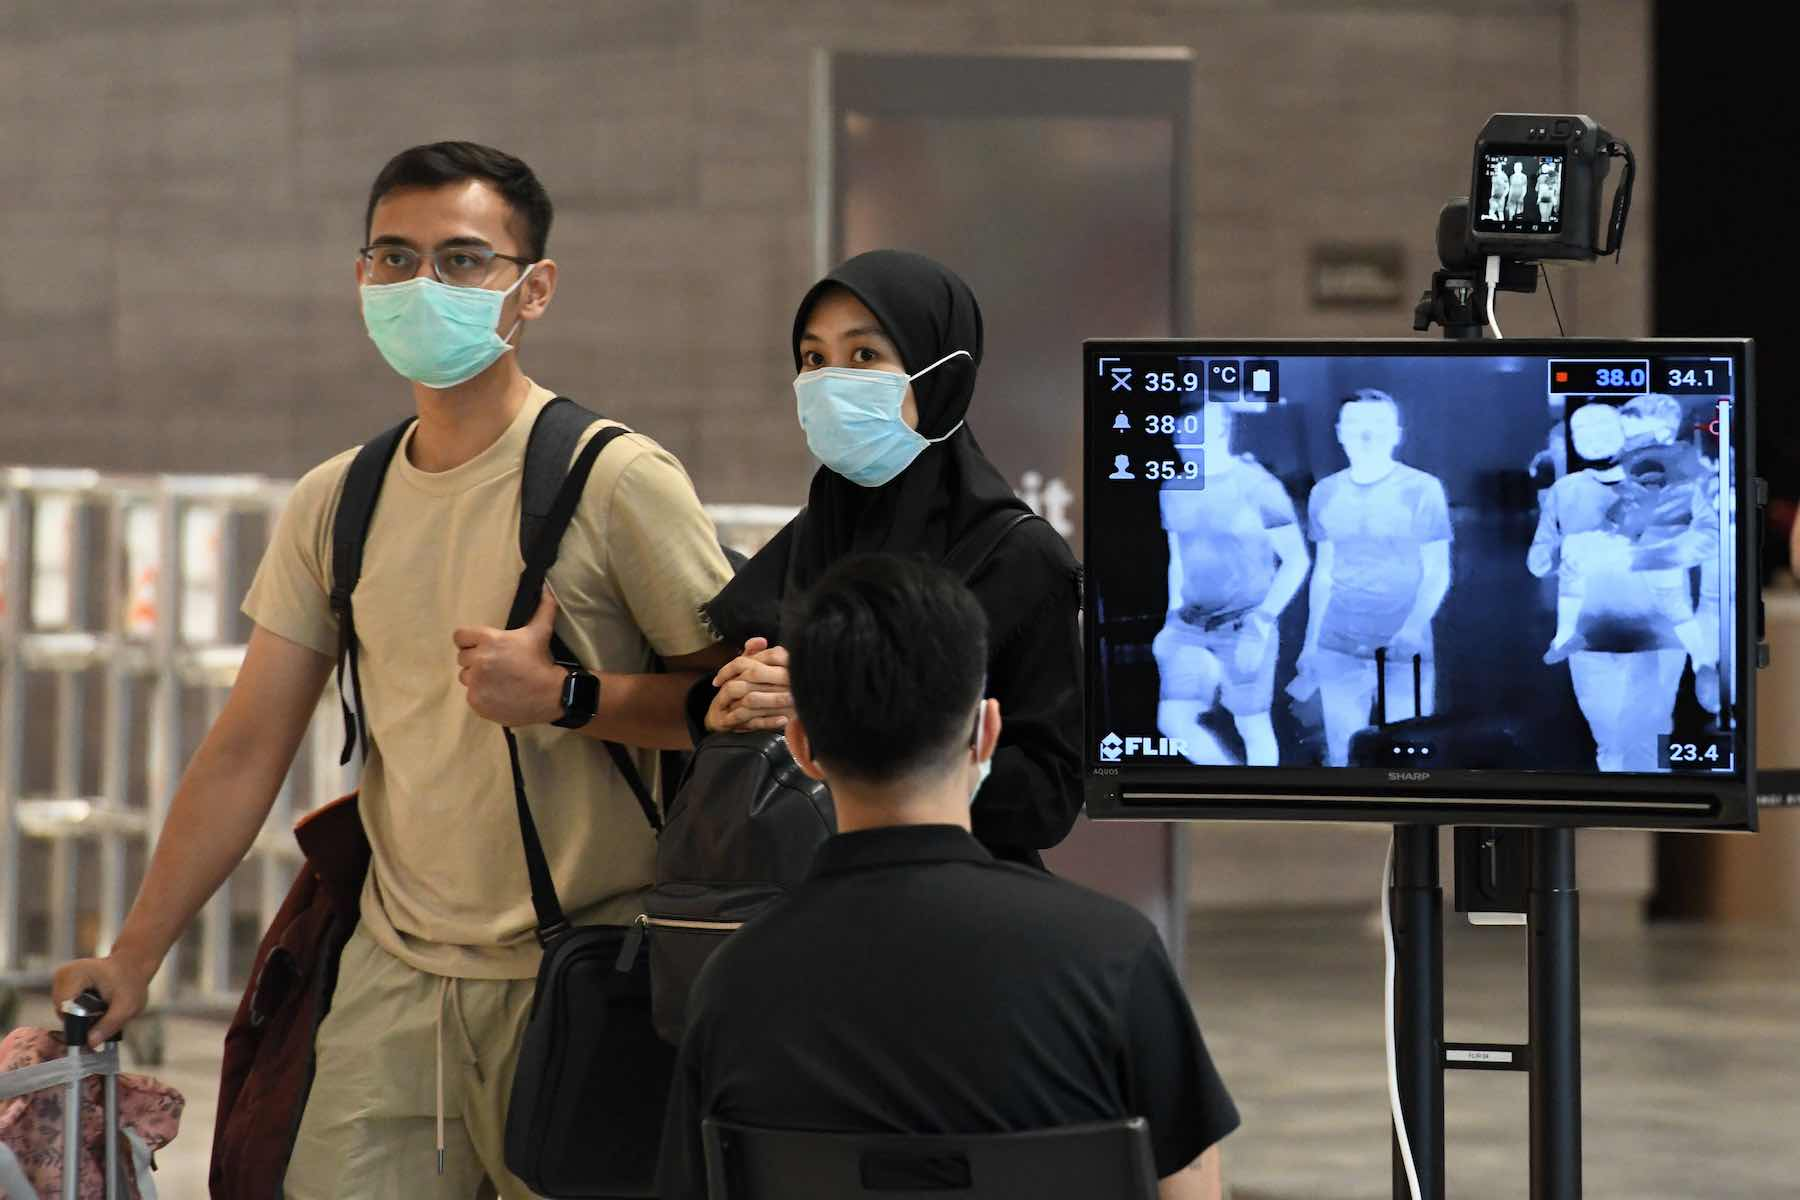 A couple walking past a temperature screening check at Changi International Airport in Singapore, 27 February 2020 (Roslan Rahman/AFP via Getty Images)